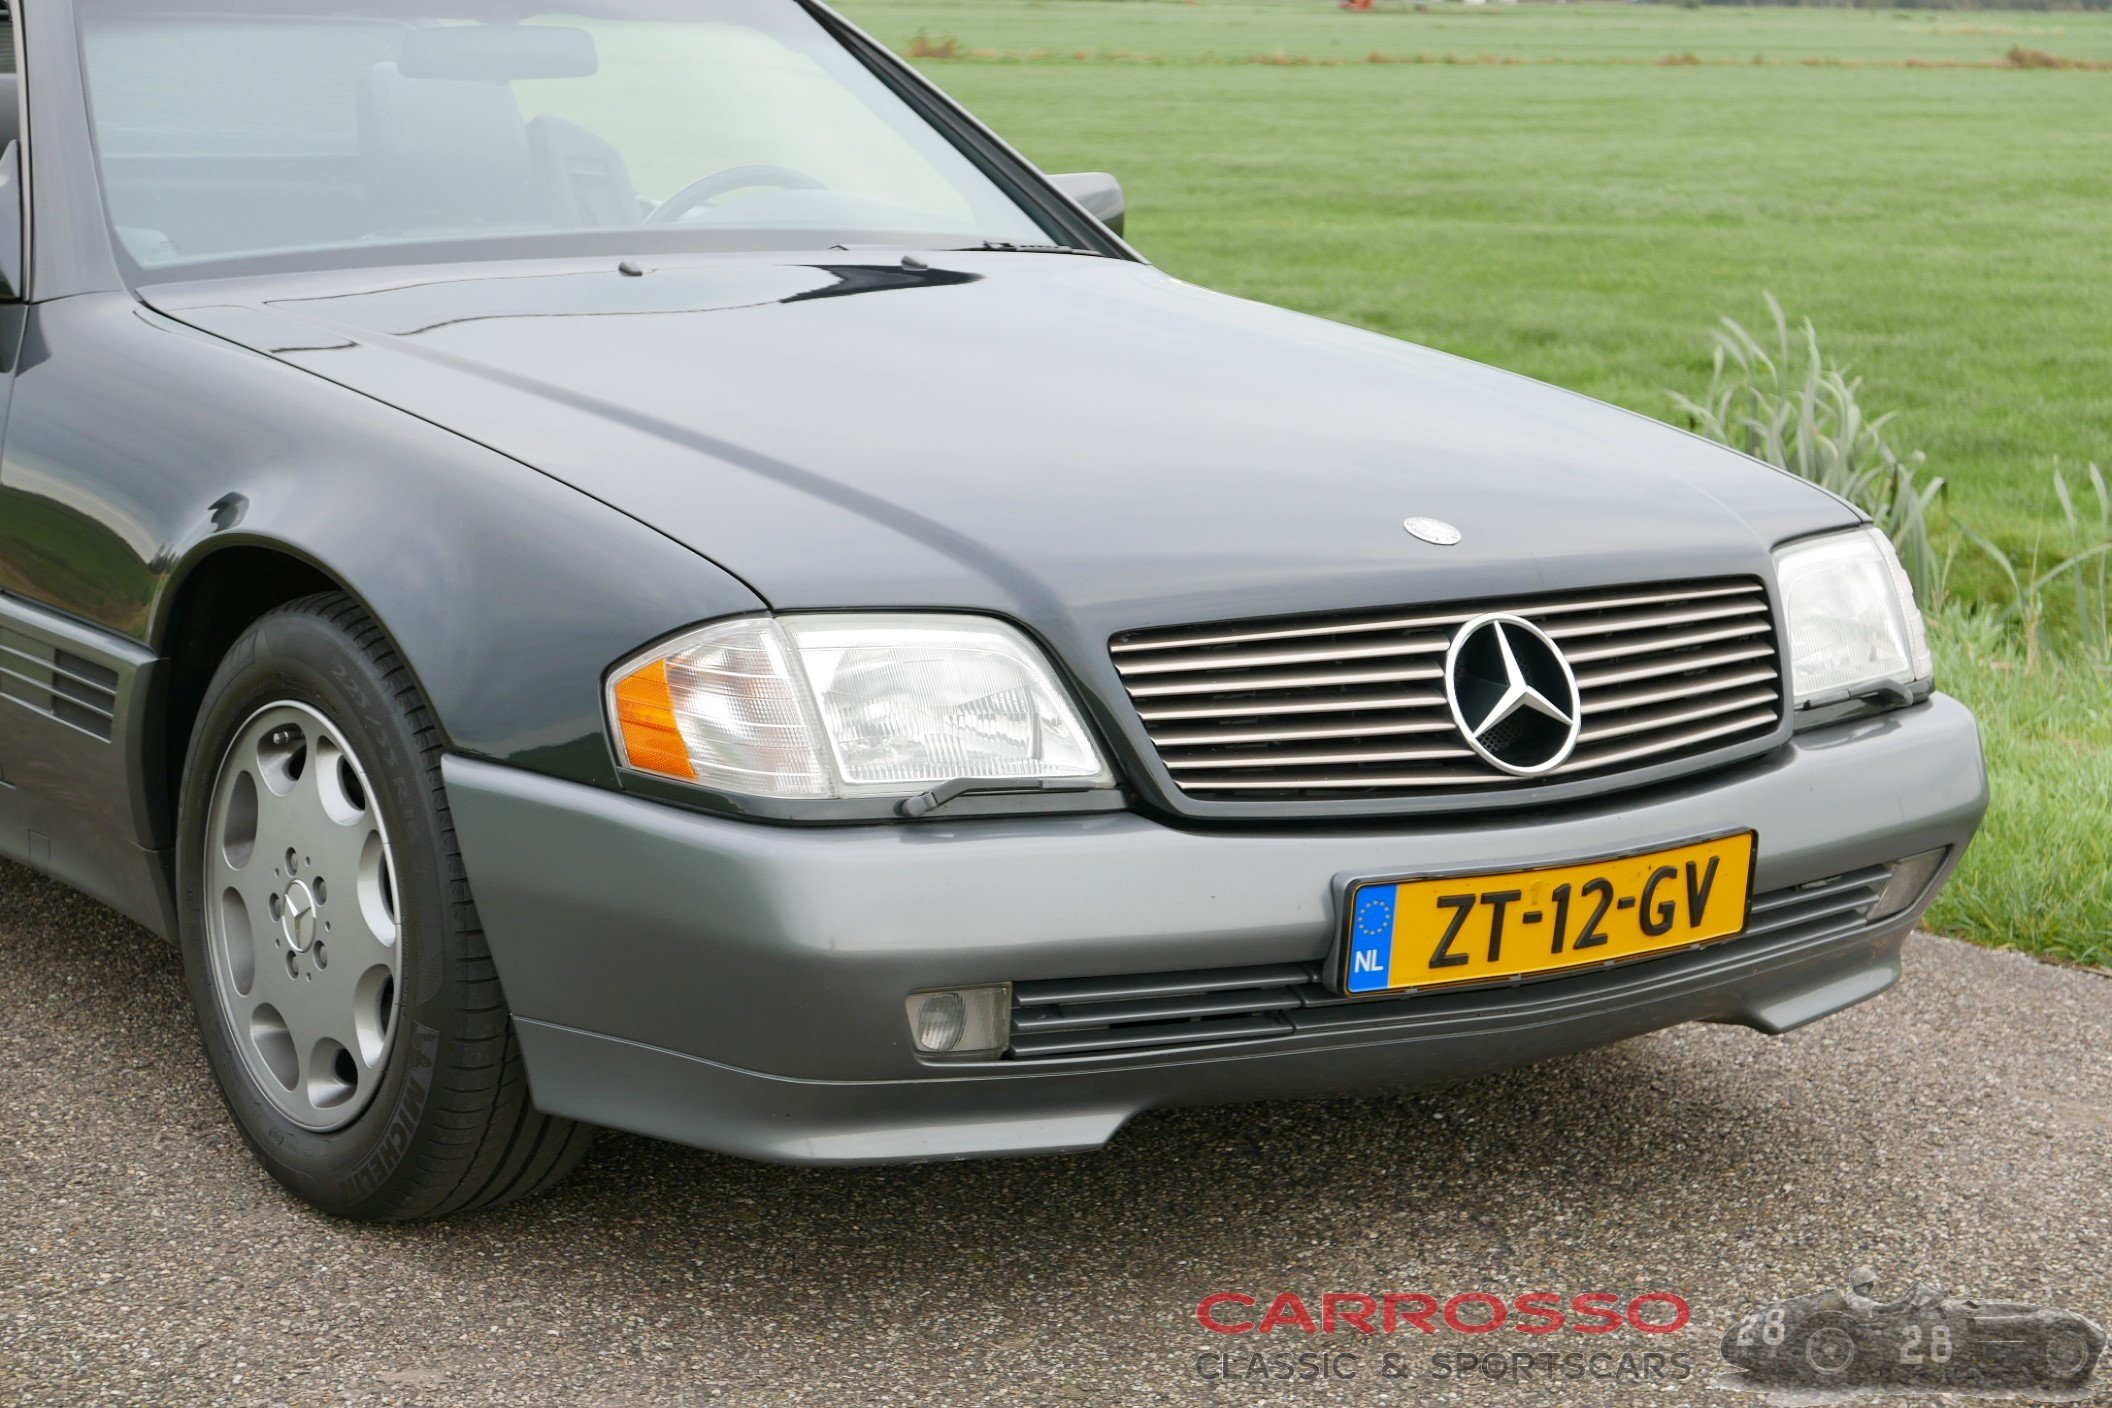 20Mercedes Benz SL 300 (74)